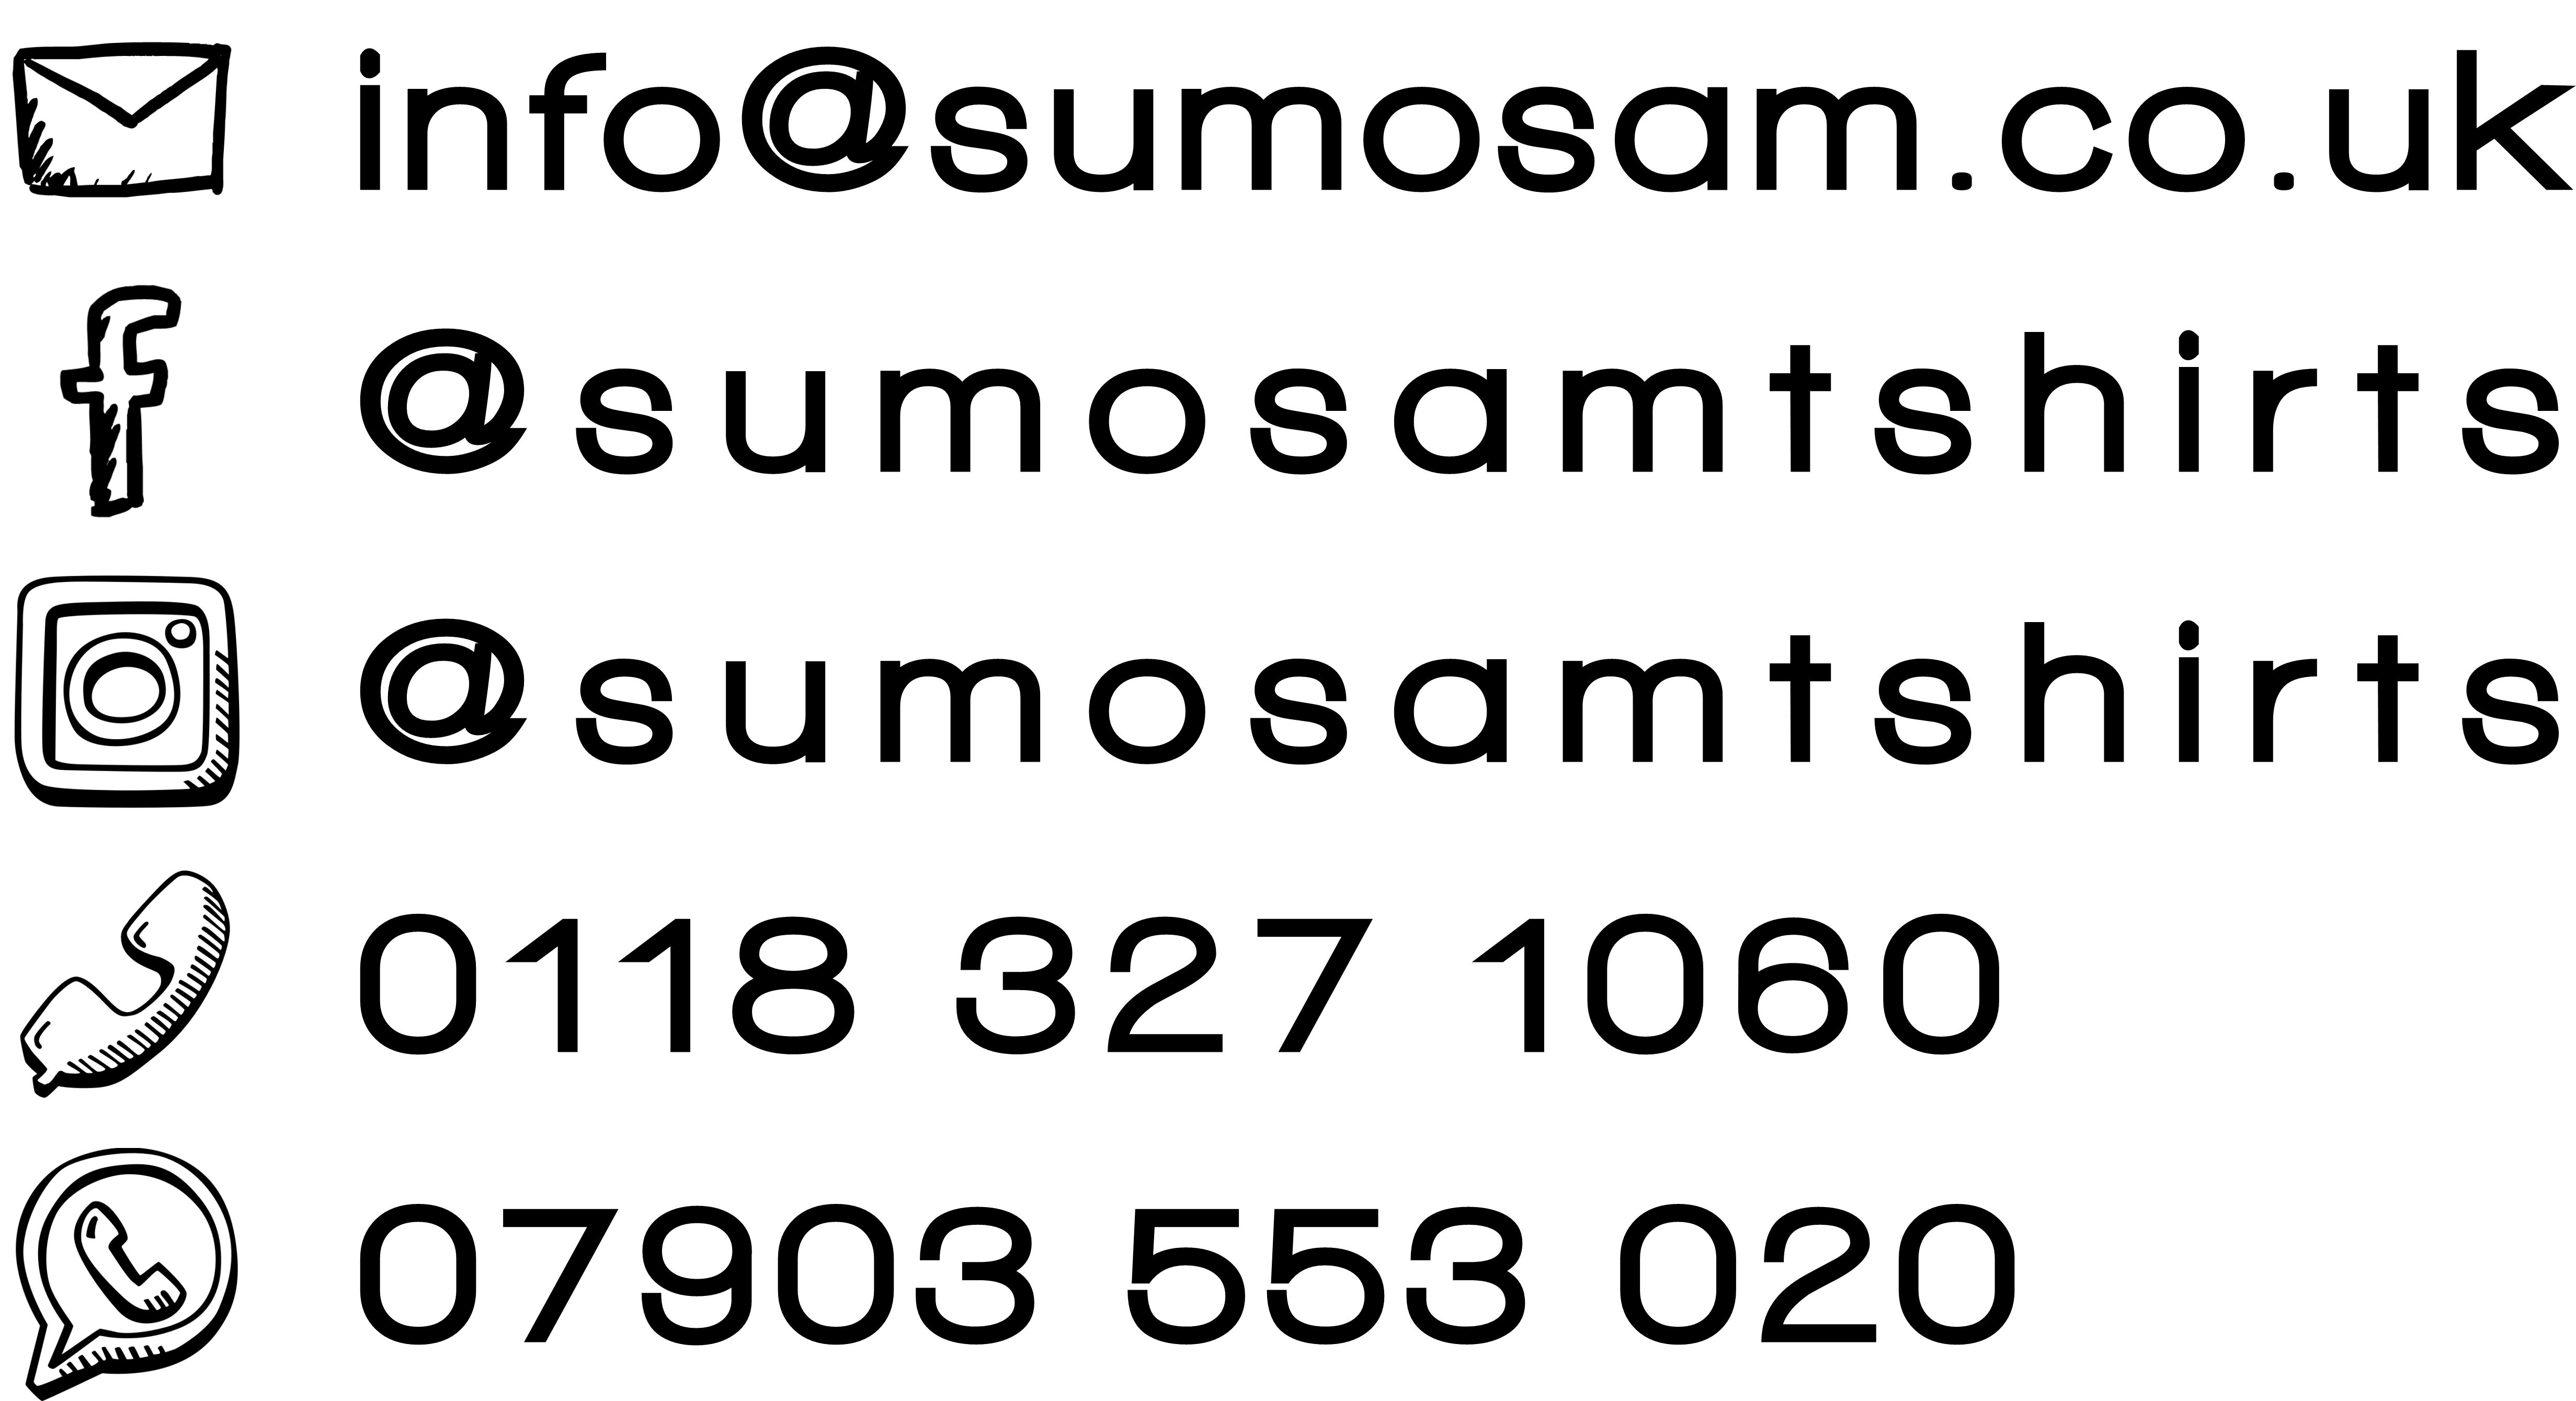 sumosam-contact-details.png